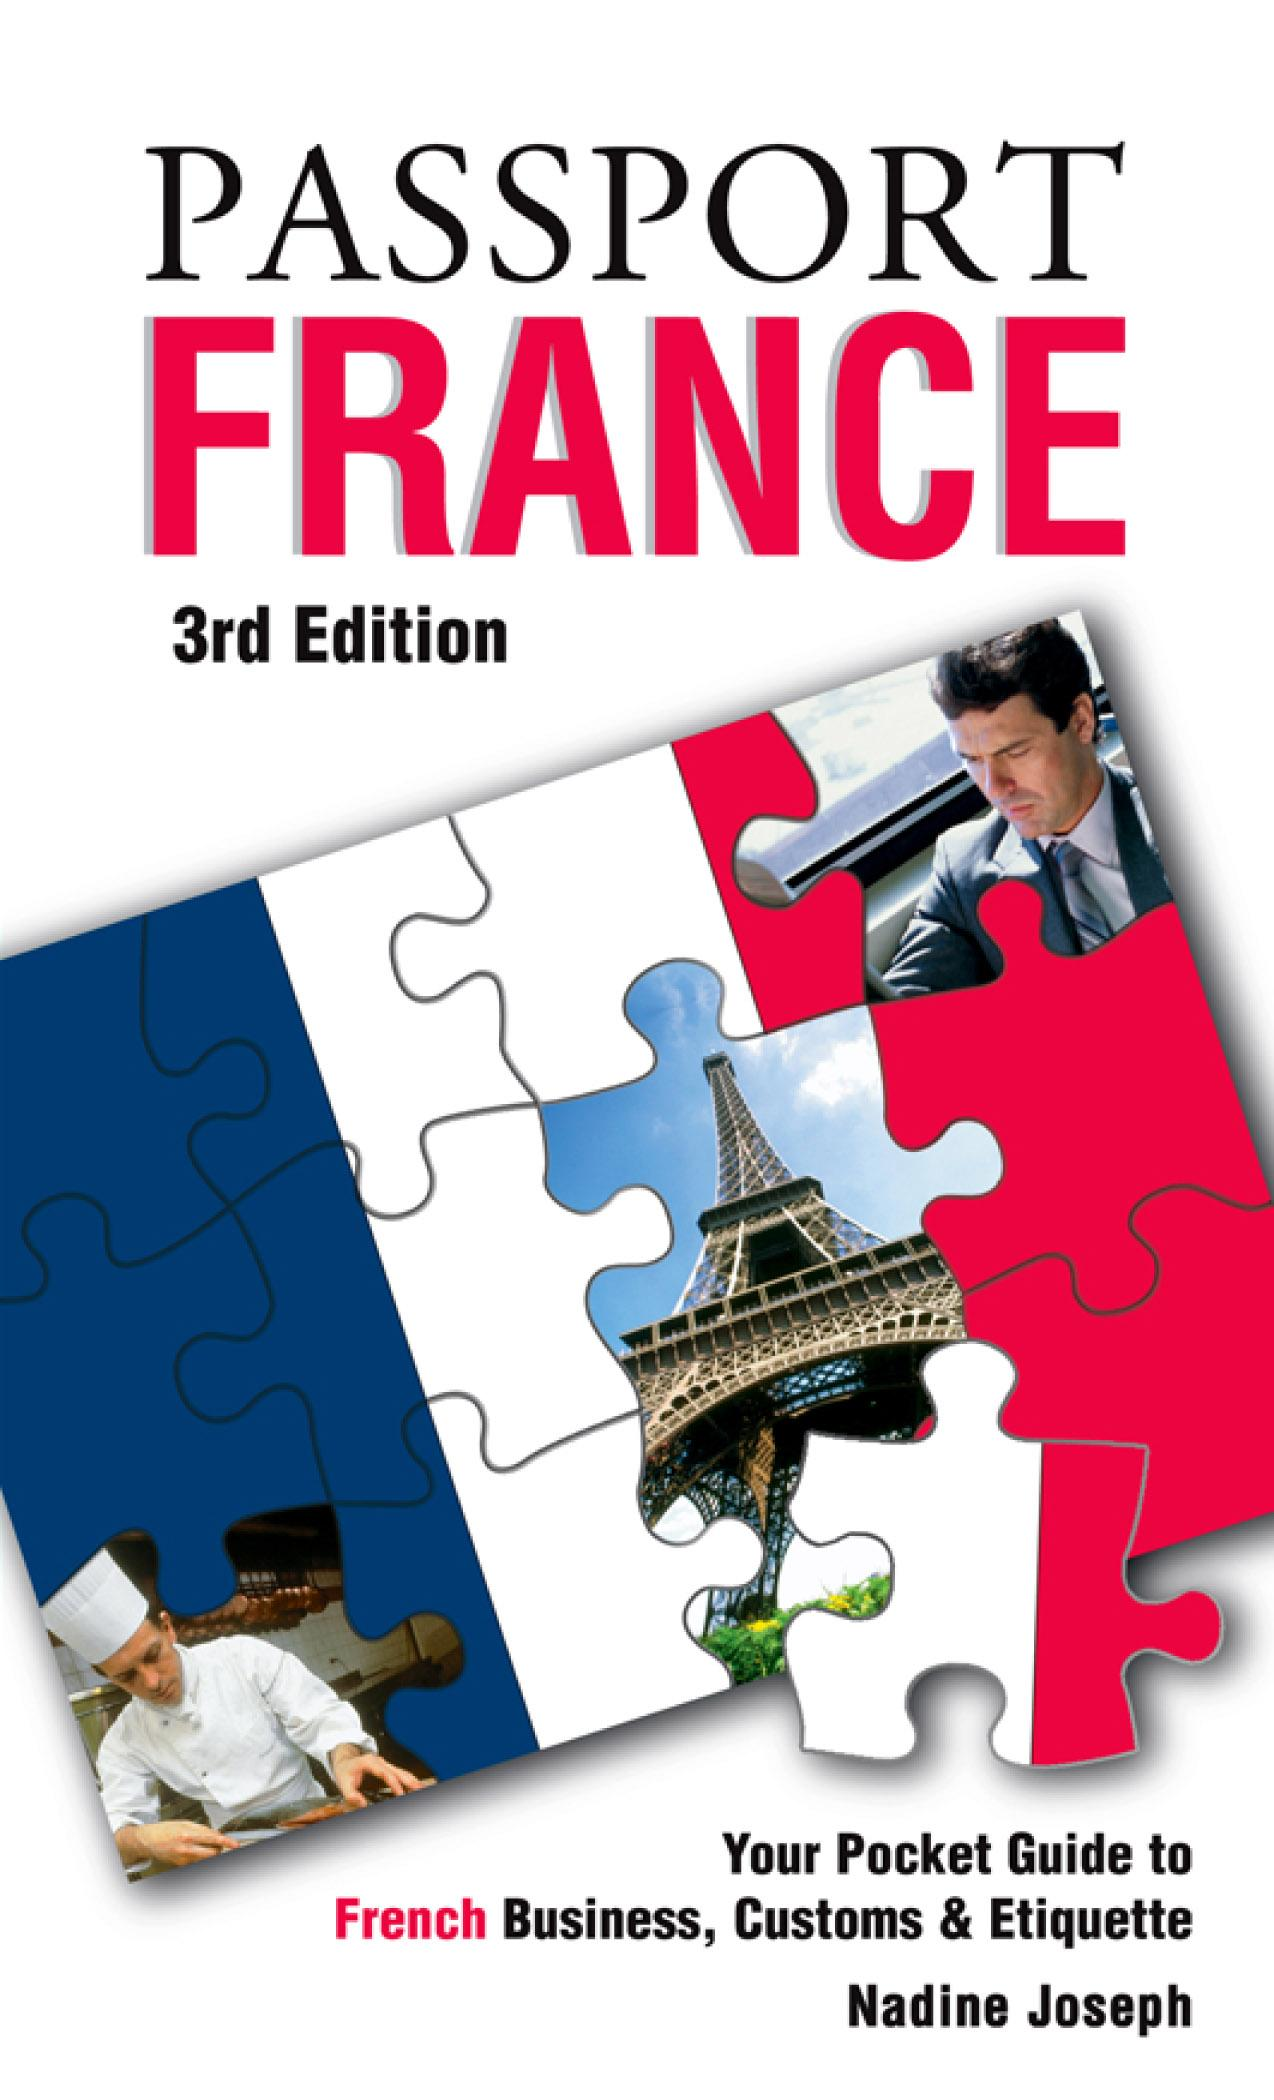 Passport France, 3rd: Your Pocket Guide to French Business, Customs & Etiquette